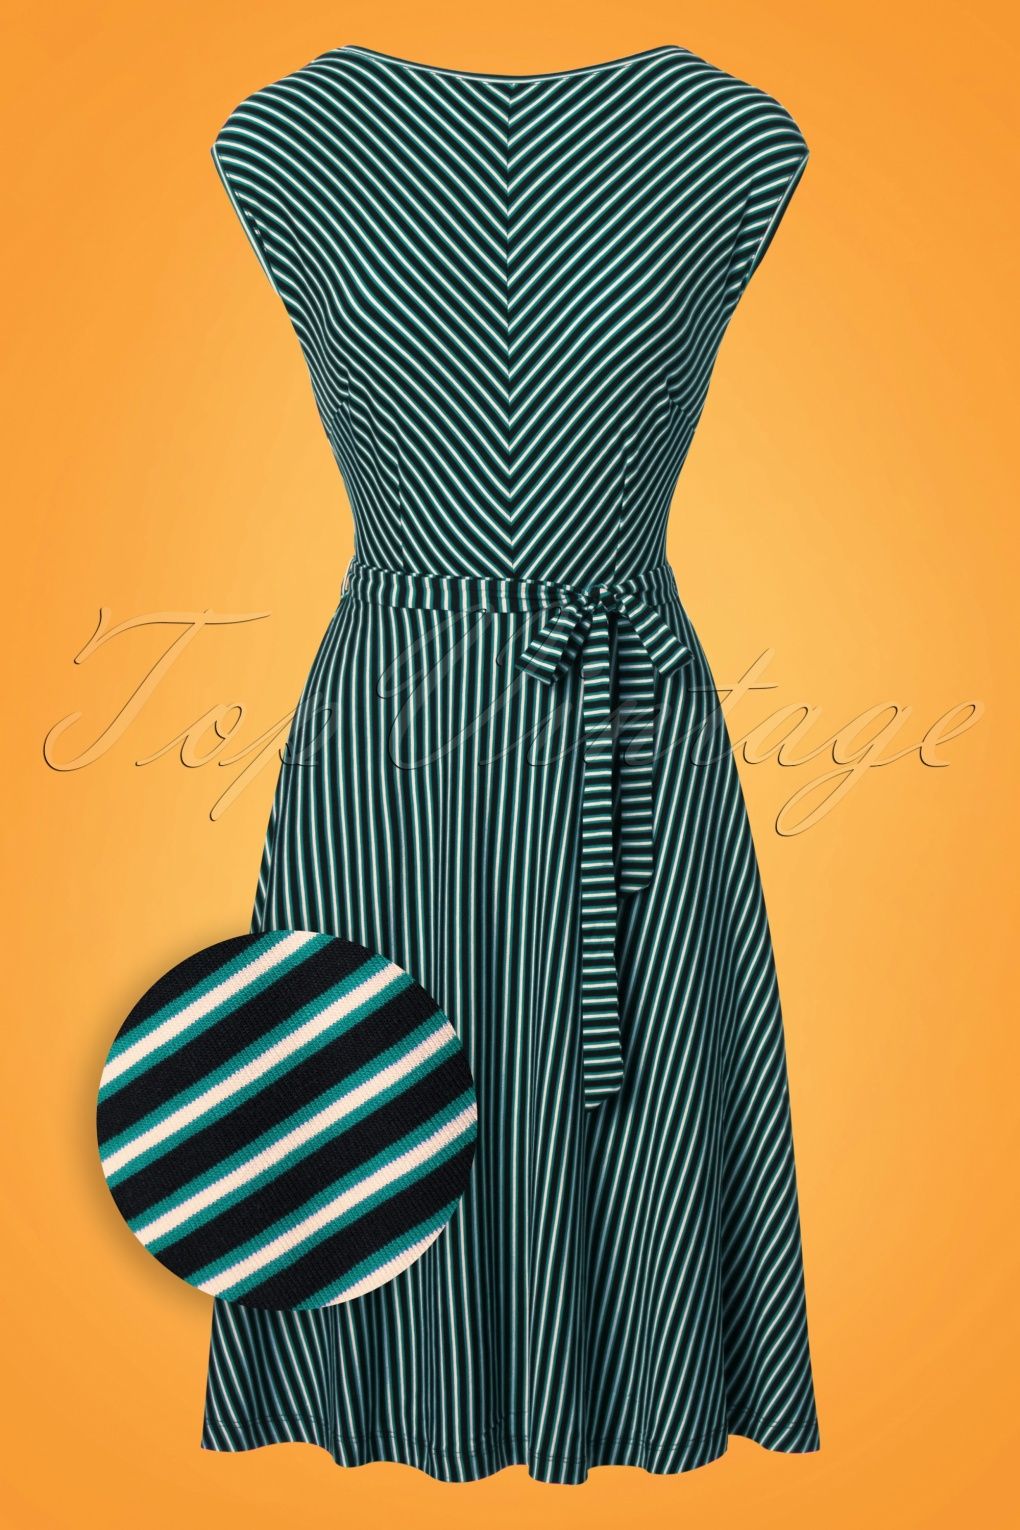 60s Plus Size Retro Dresses, Clothing, Costumes | 70s Dresses 70s Grace Slim Shady Swing Dress in Waterfall Green £70.56 AT vintagedancer.com